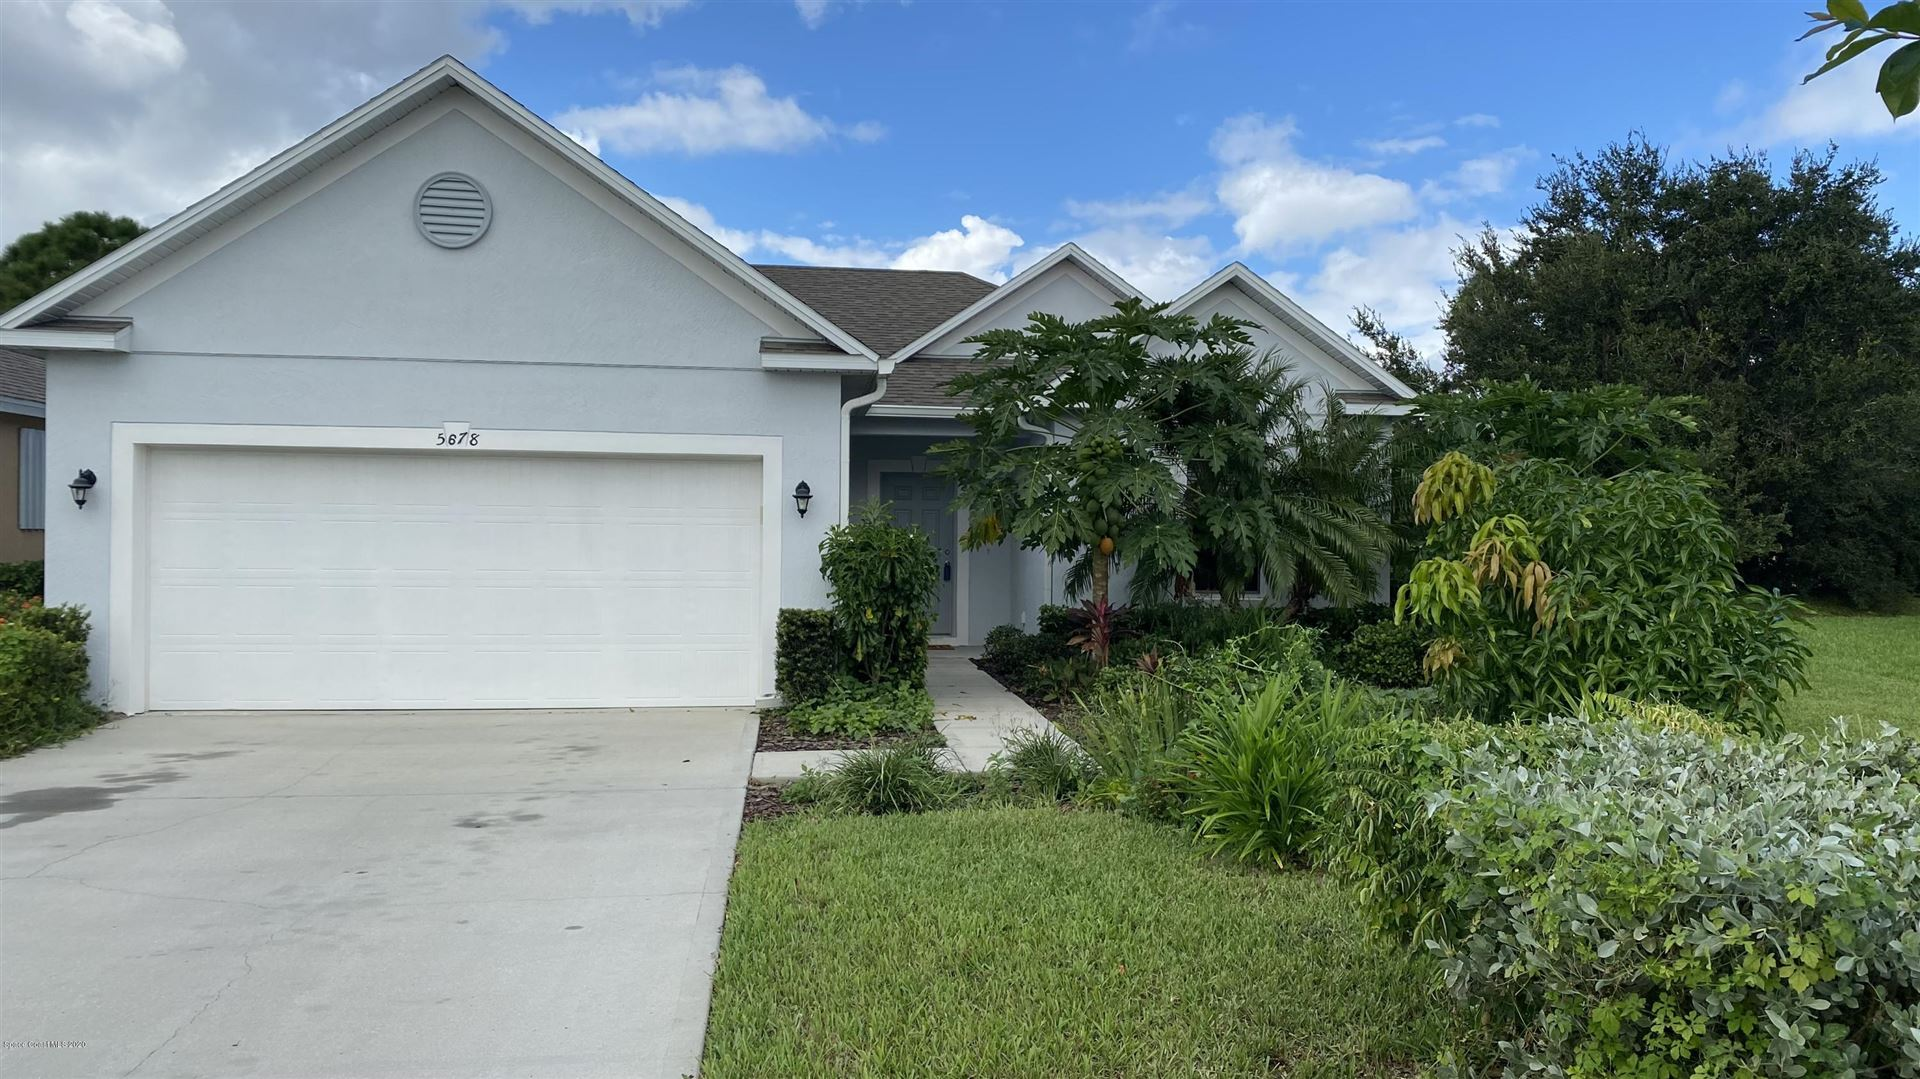 5678 Yearling Drive, Titusville, FL 32780 - #: 886675